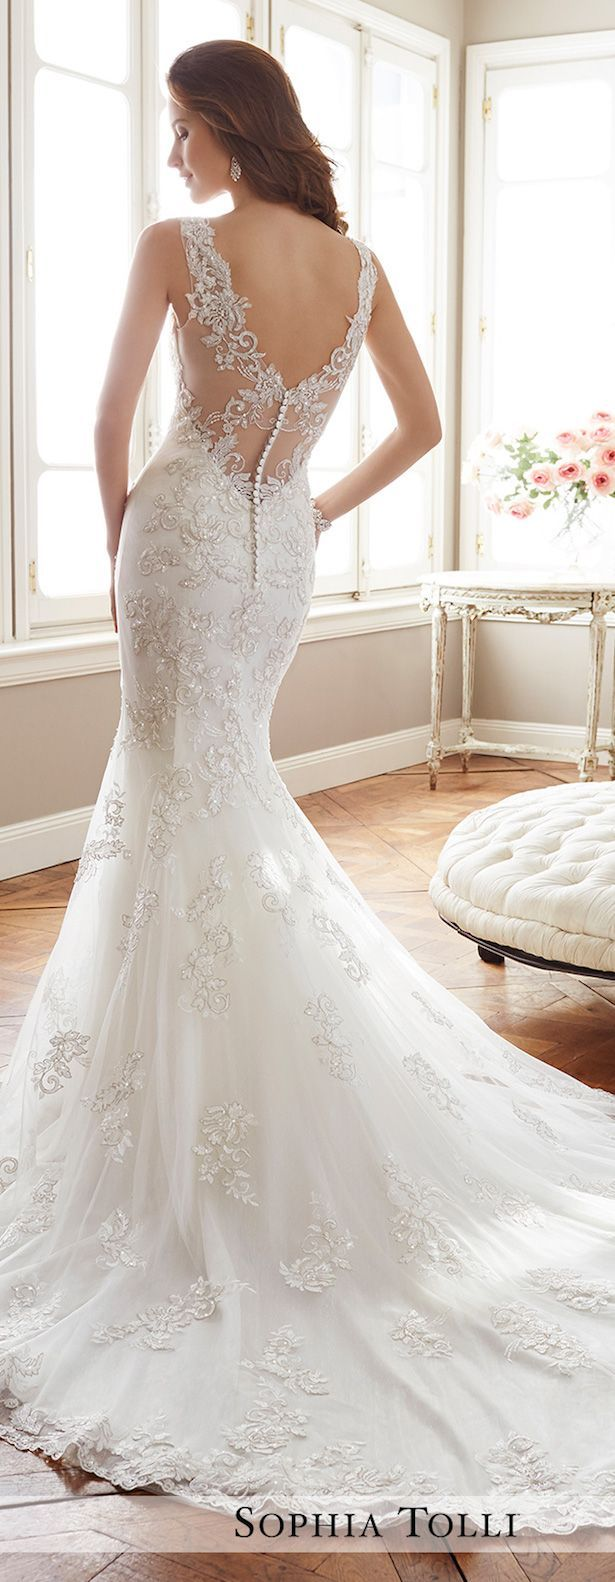 Here at BTM, we get giddy whenever we see anything from Sophia Tolli in our inboxes. And today is no exception because this award-winning bridal designer is sharing her newest collection with us! From chic, romantic pieces to sexy silhouettes that highlight every feminine curve oh-so-glamorously, Sophia Tolli's Spring 2017 Bridal Collection is a luxurious read more...